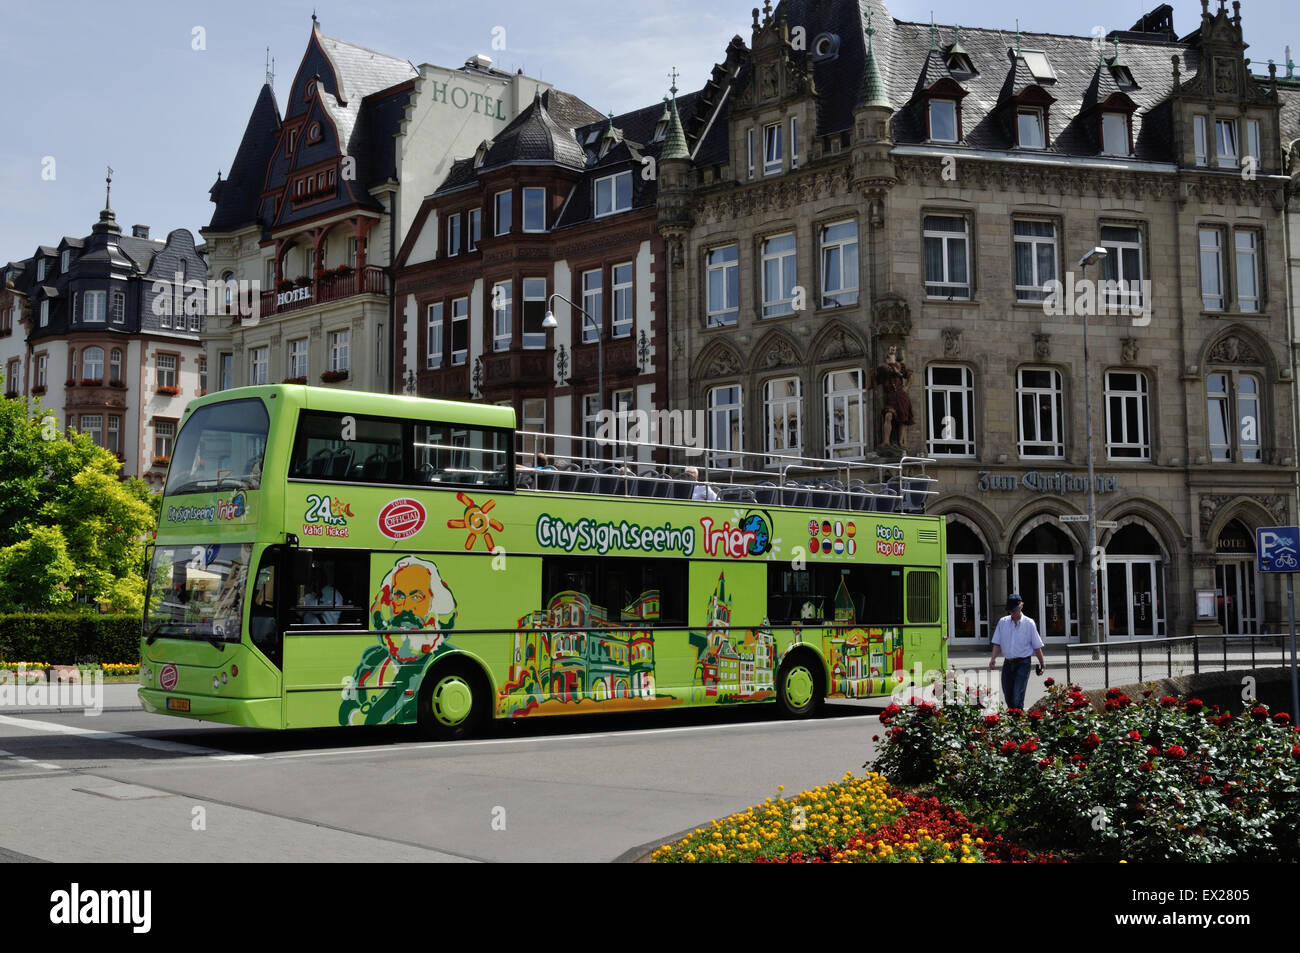 City Sightseeing bus in Trier, Germany. Luxembourg registration SL 3240. Volvo/East Lancs Vyking. - Stock Image